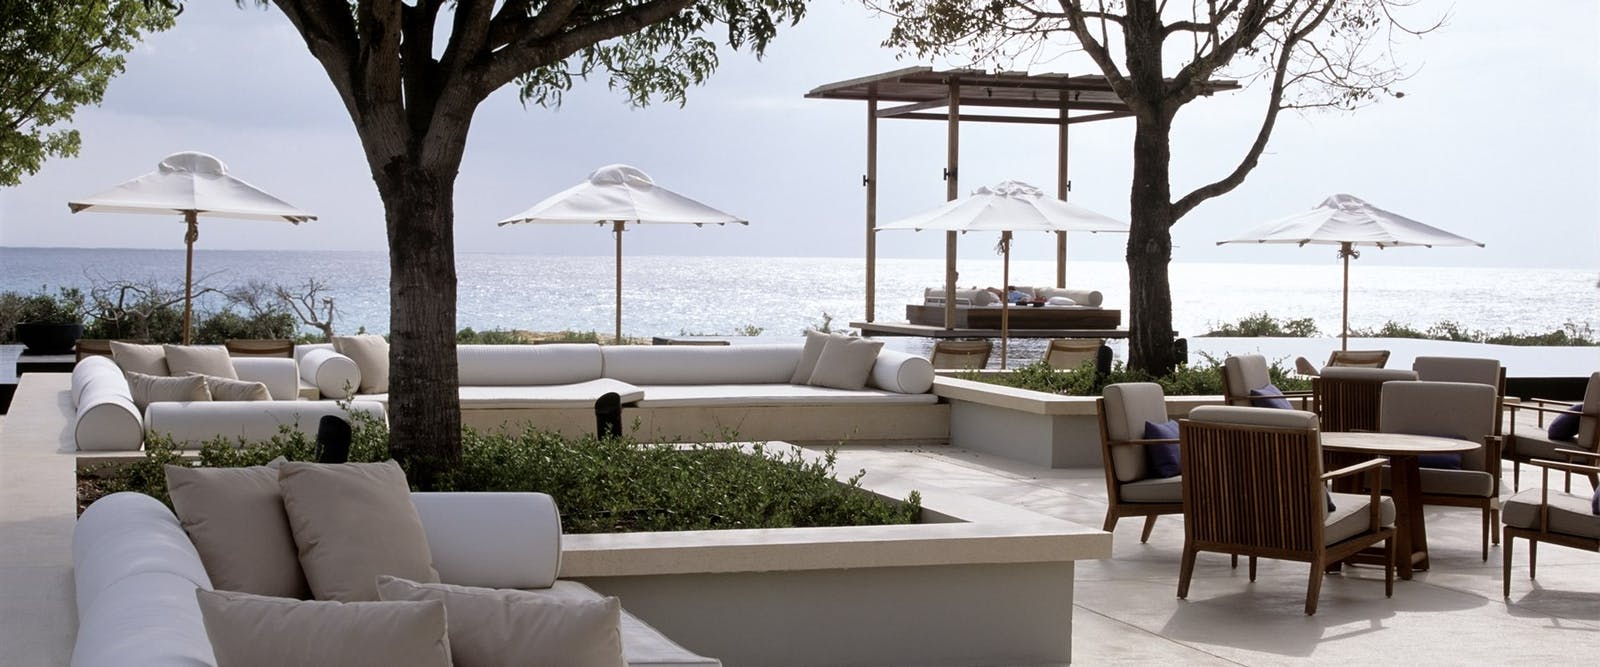 Deck terrace at Amanyara, Turks and Caicos